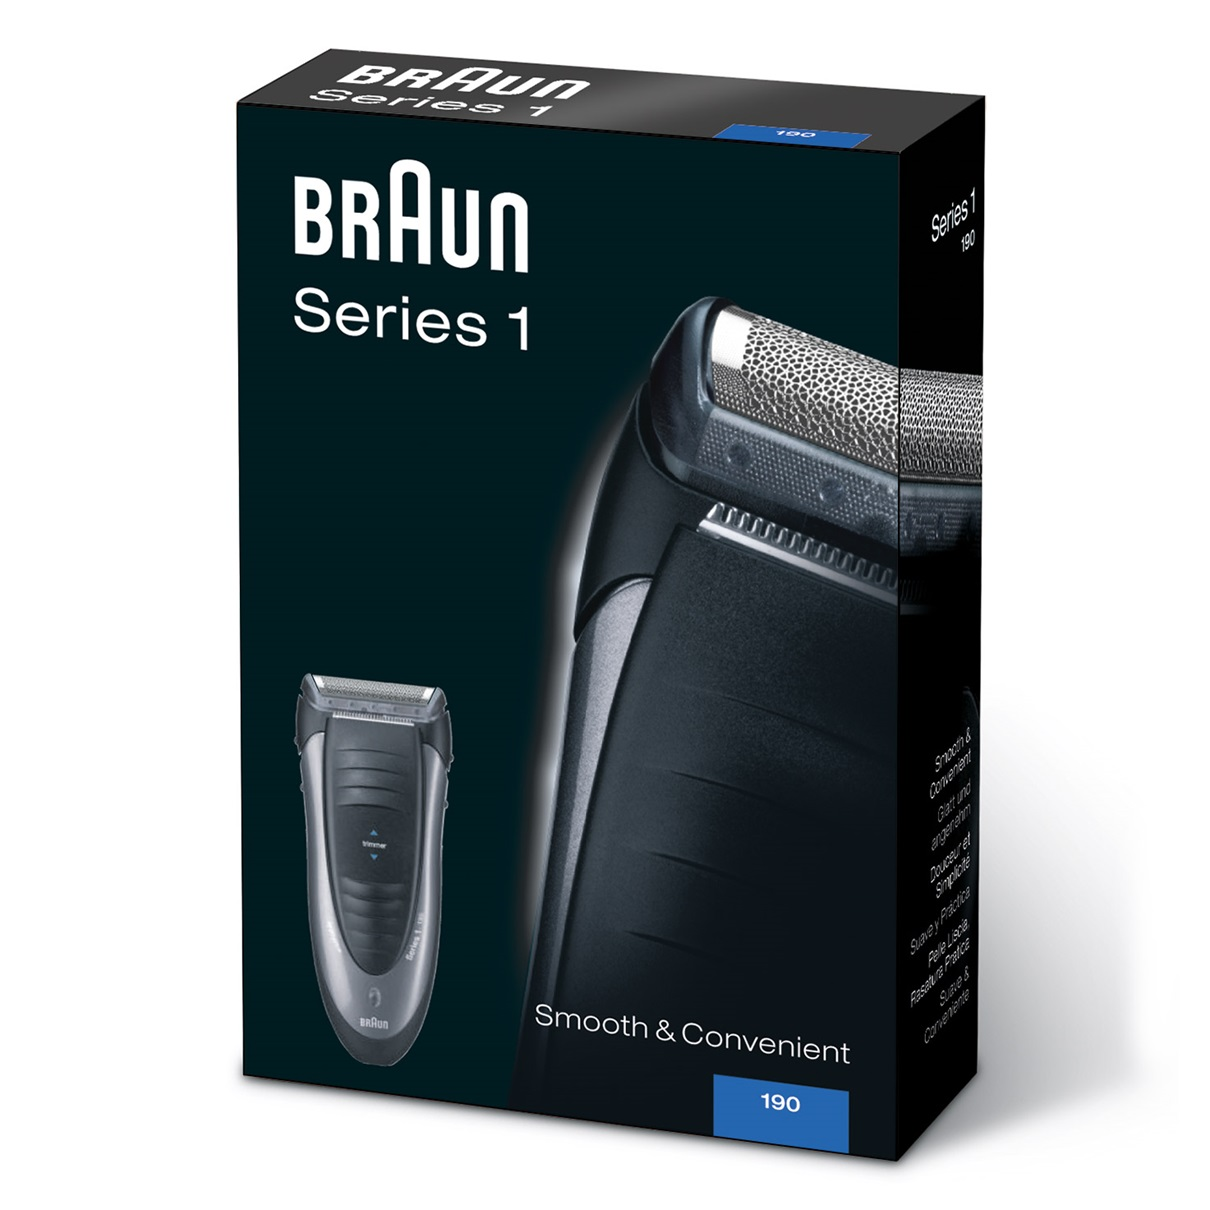 Braun Series 1 190s shaver - packaging